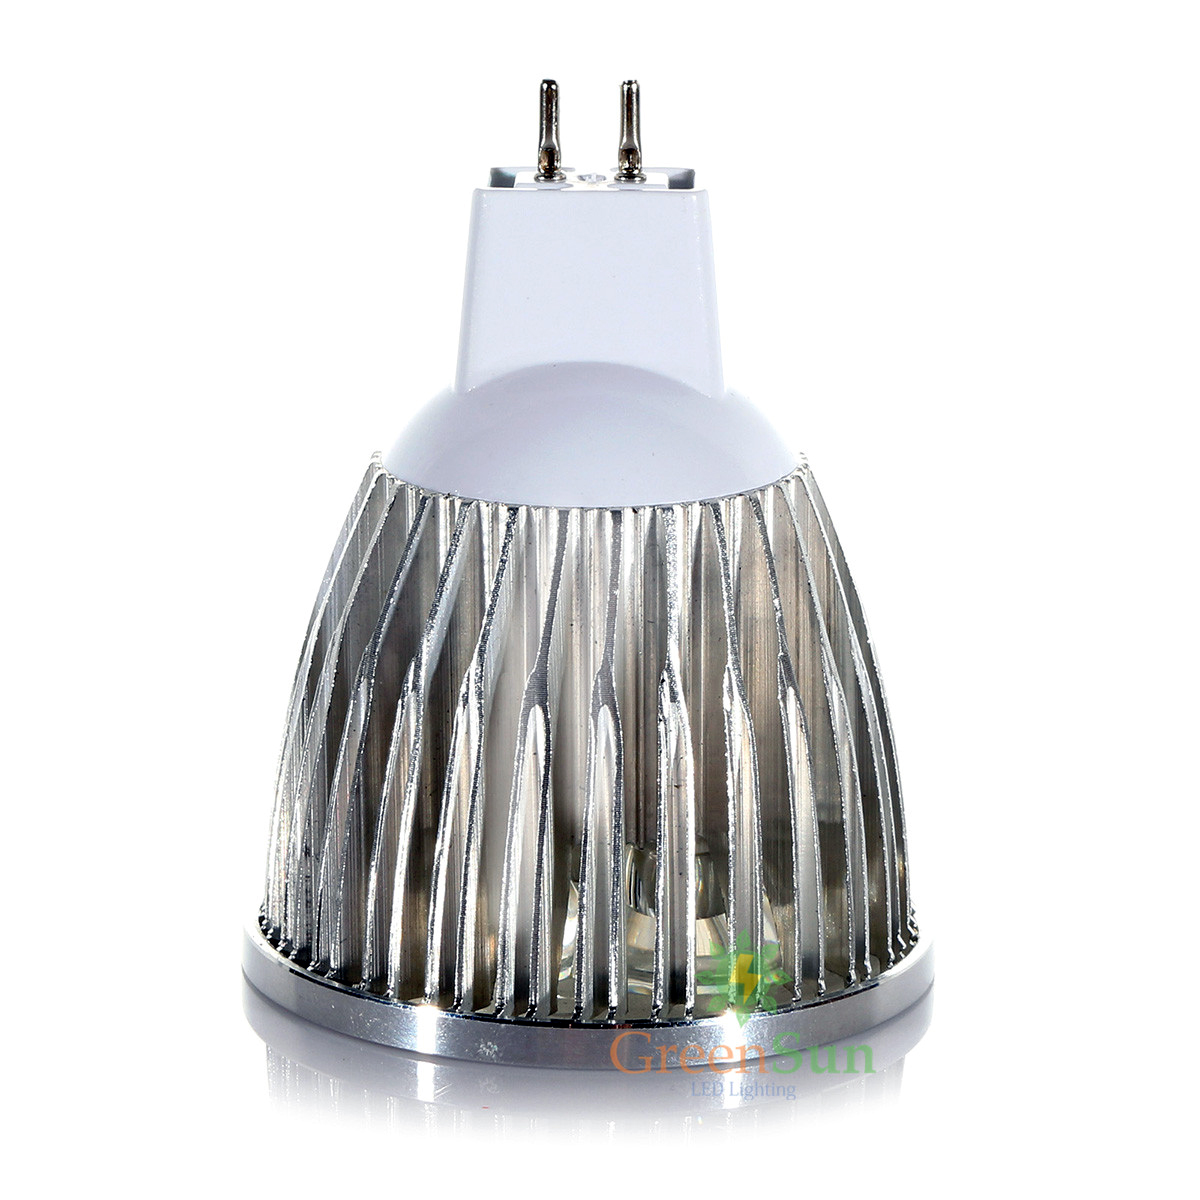 gu10 mr16 e27 e14 6w 9w 12w 15w led cob ampoule lampe downlight spot light bulb ebay. Black Bedroom Furniture Sets. Home Design Ideas